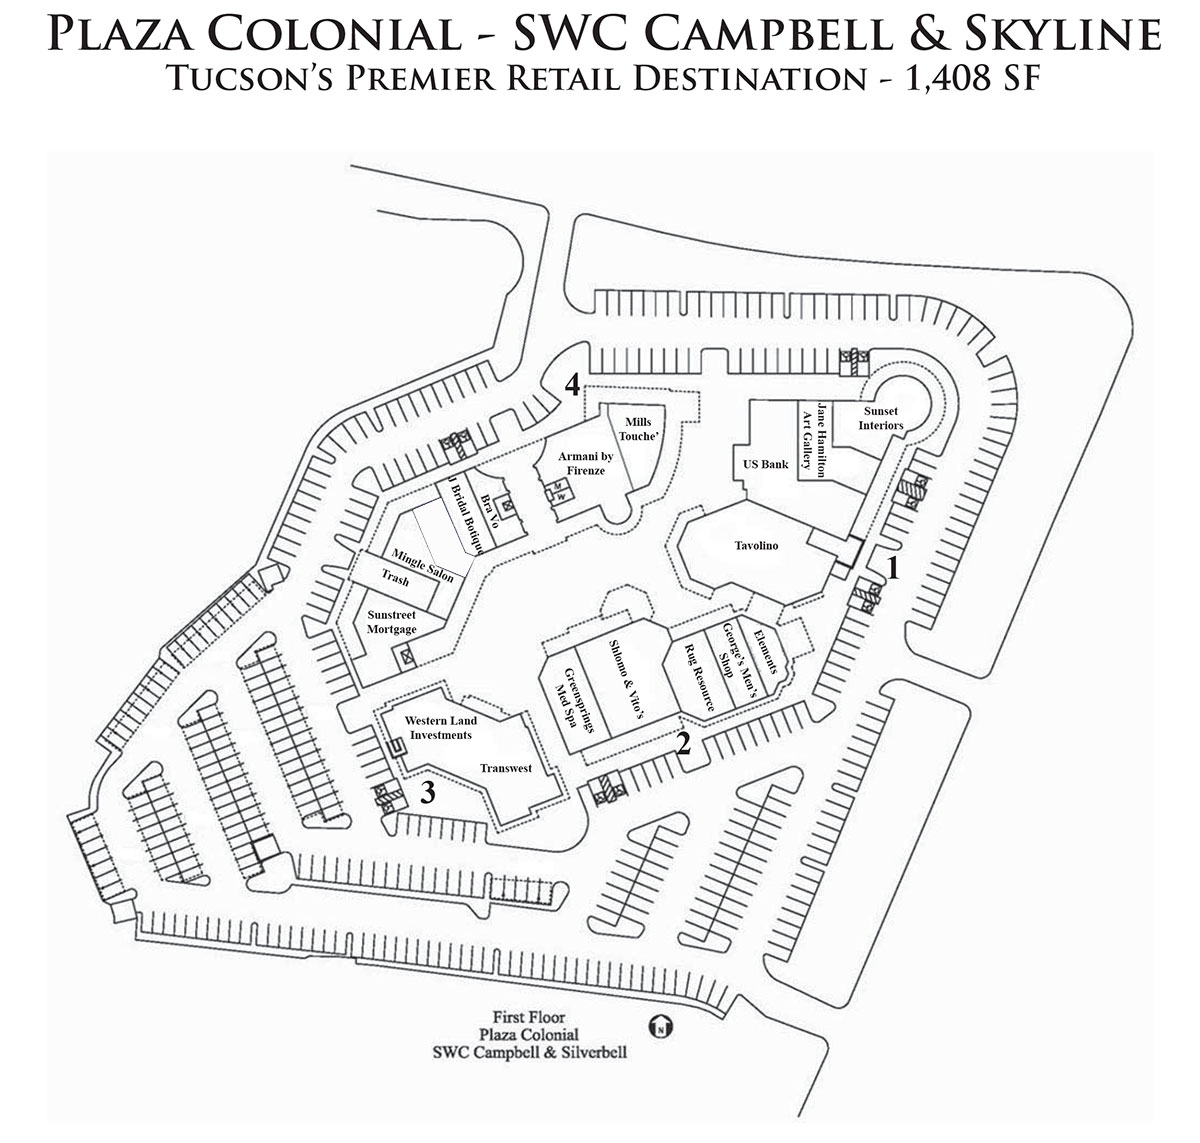 Plaza Colonial Site Map